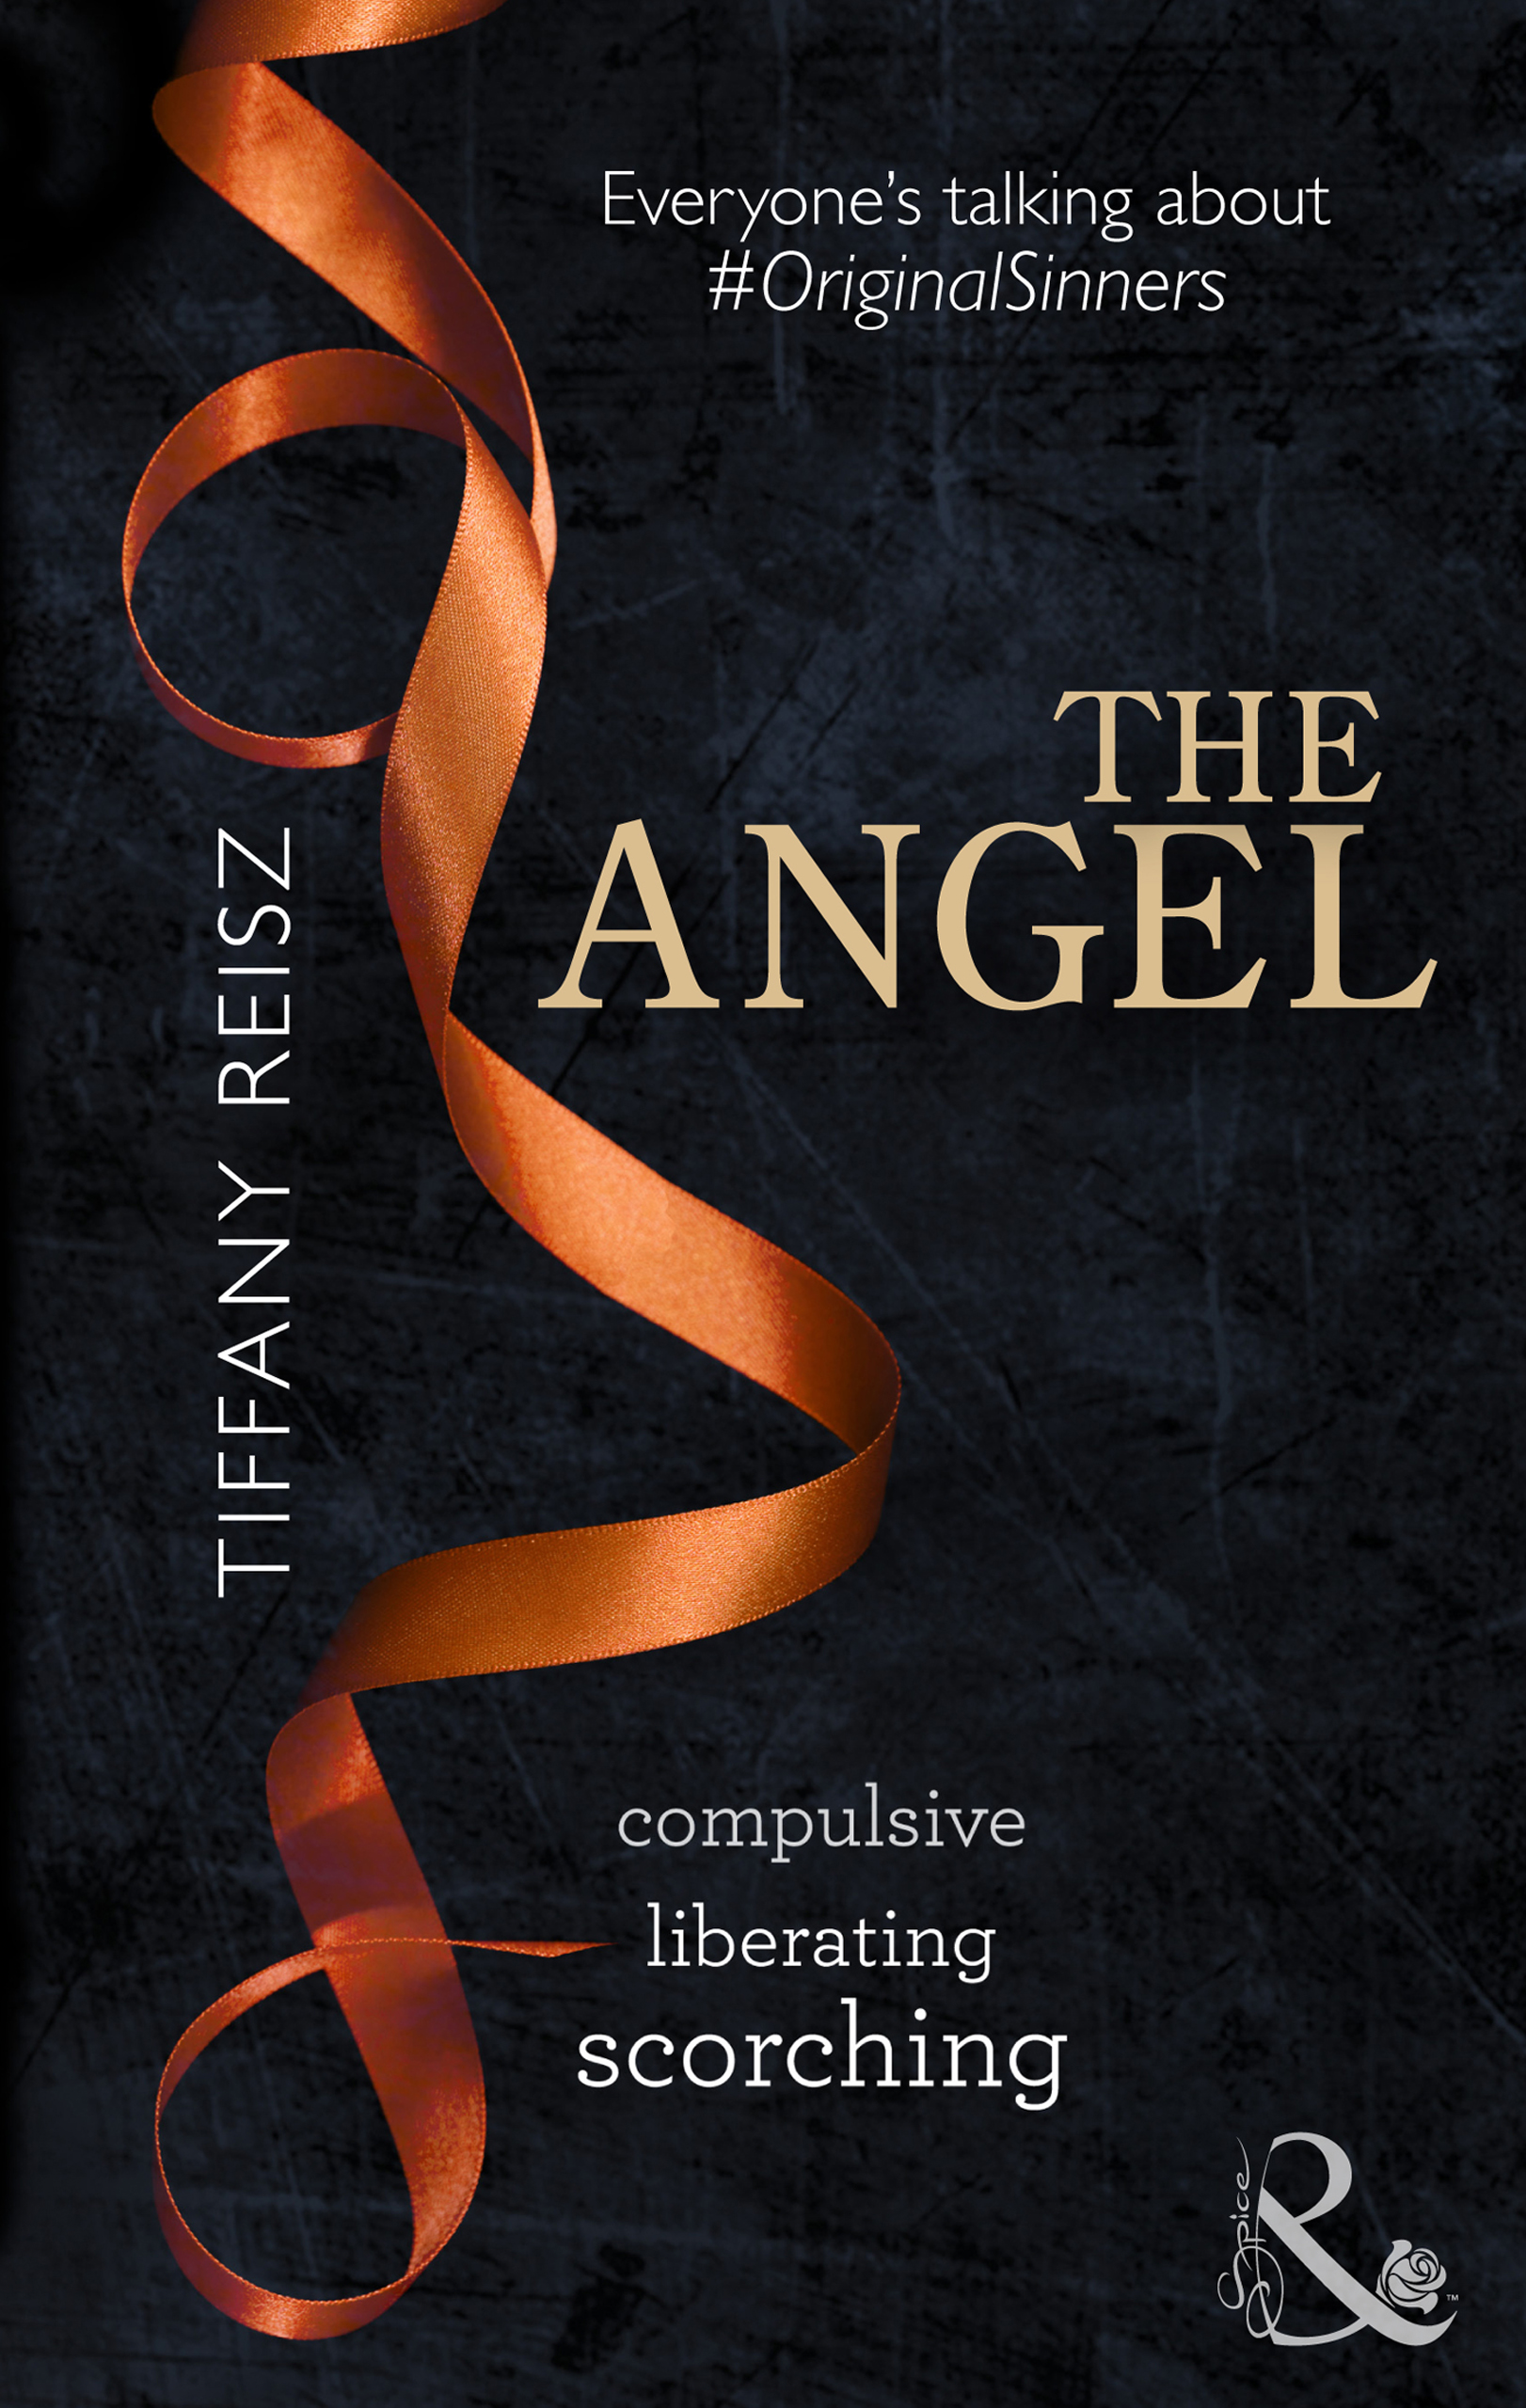 The Angel (Spice) (The Original Sinners - Book 2)